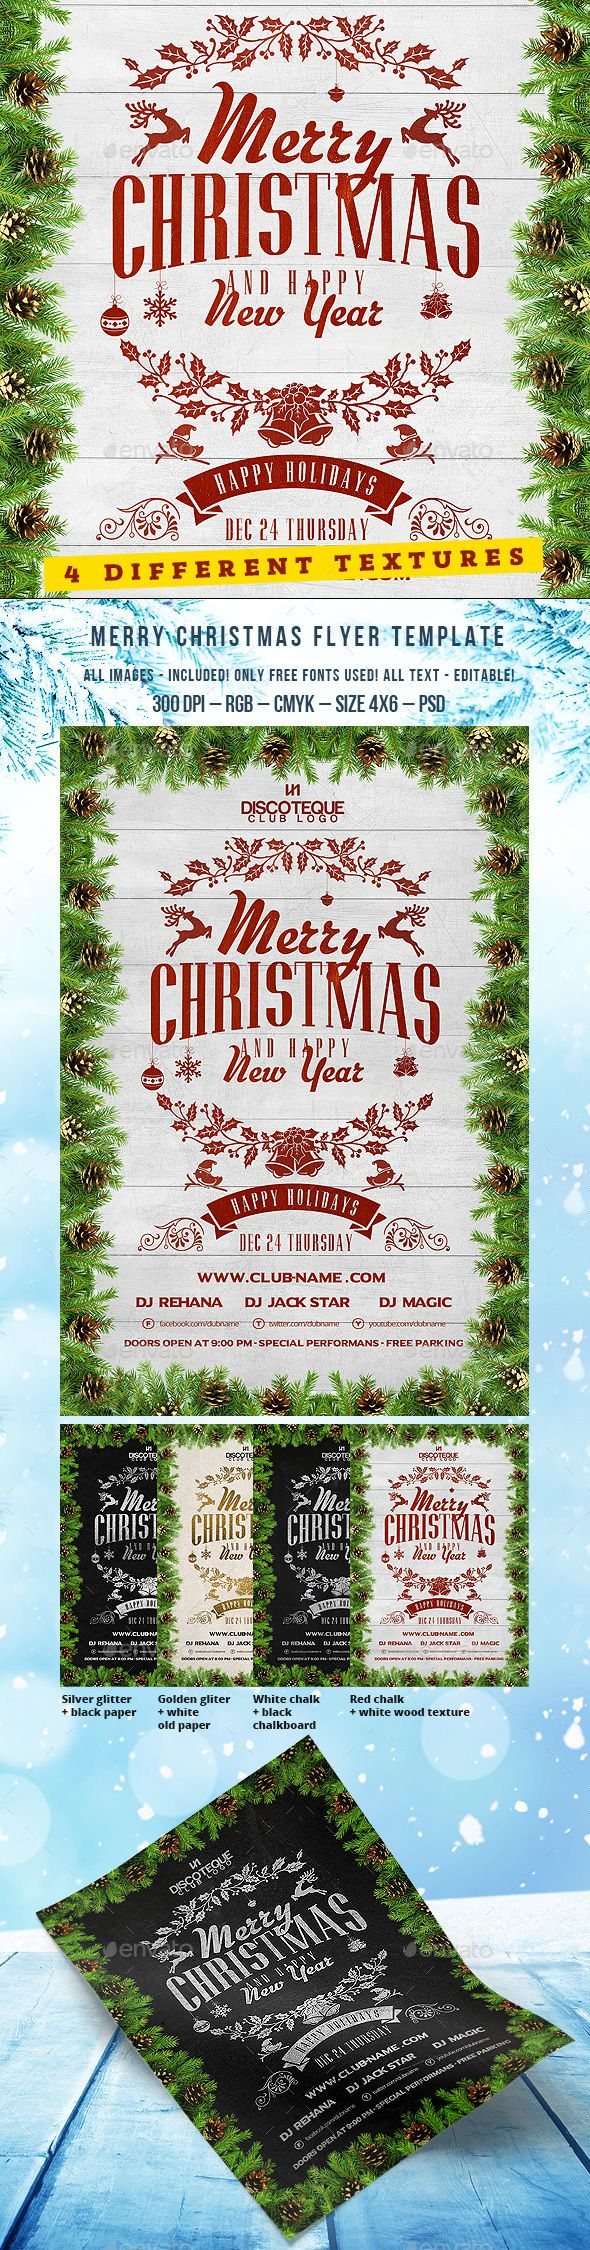 Christmas Flyer 73 best Party design images